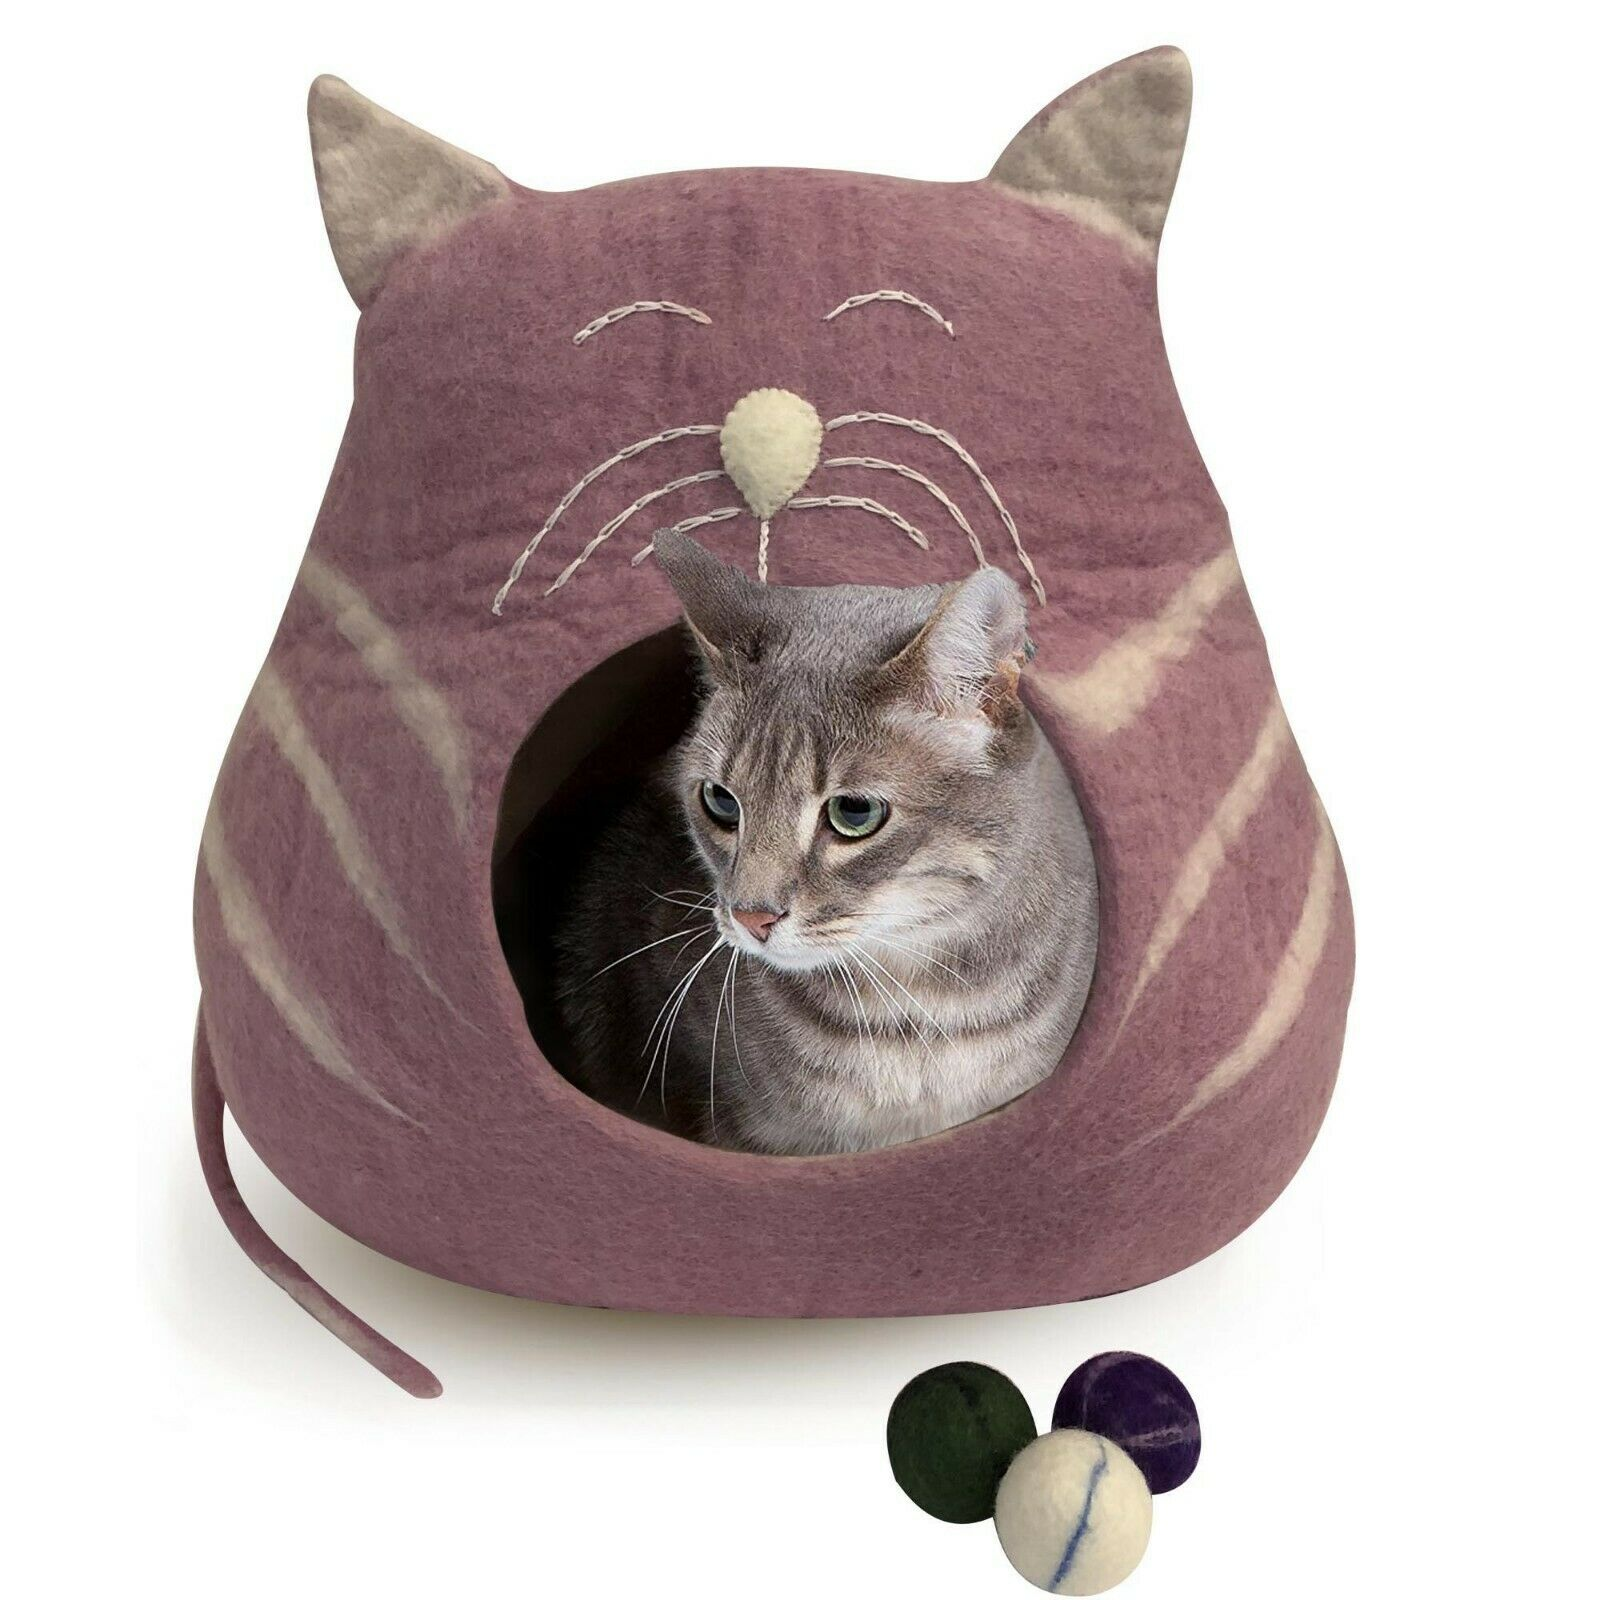 100% All Natural Wool, Genuine Felt Cat Bed Cave, Handmade in Nepal